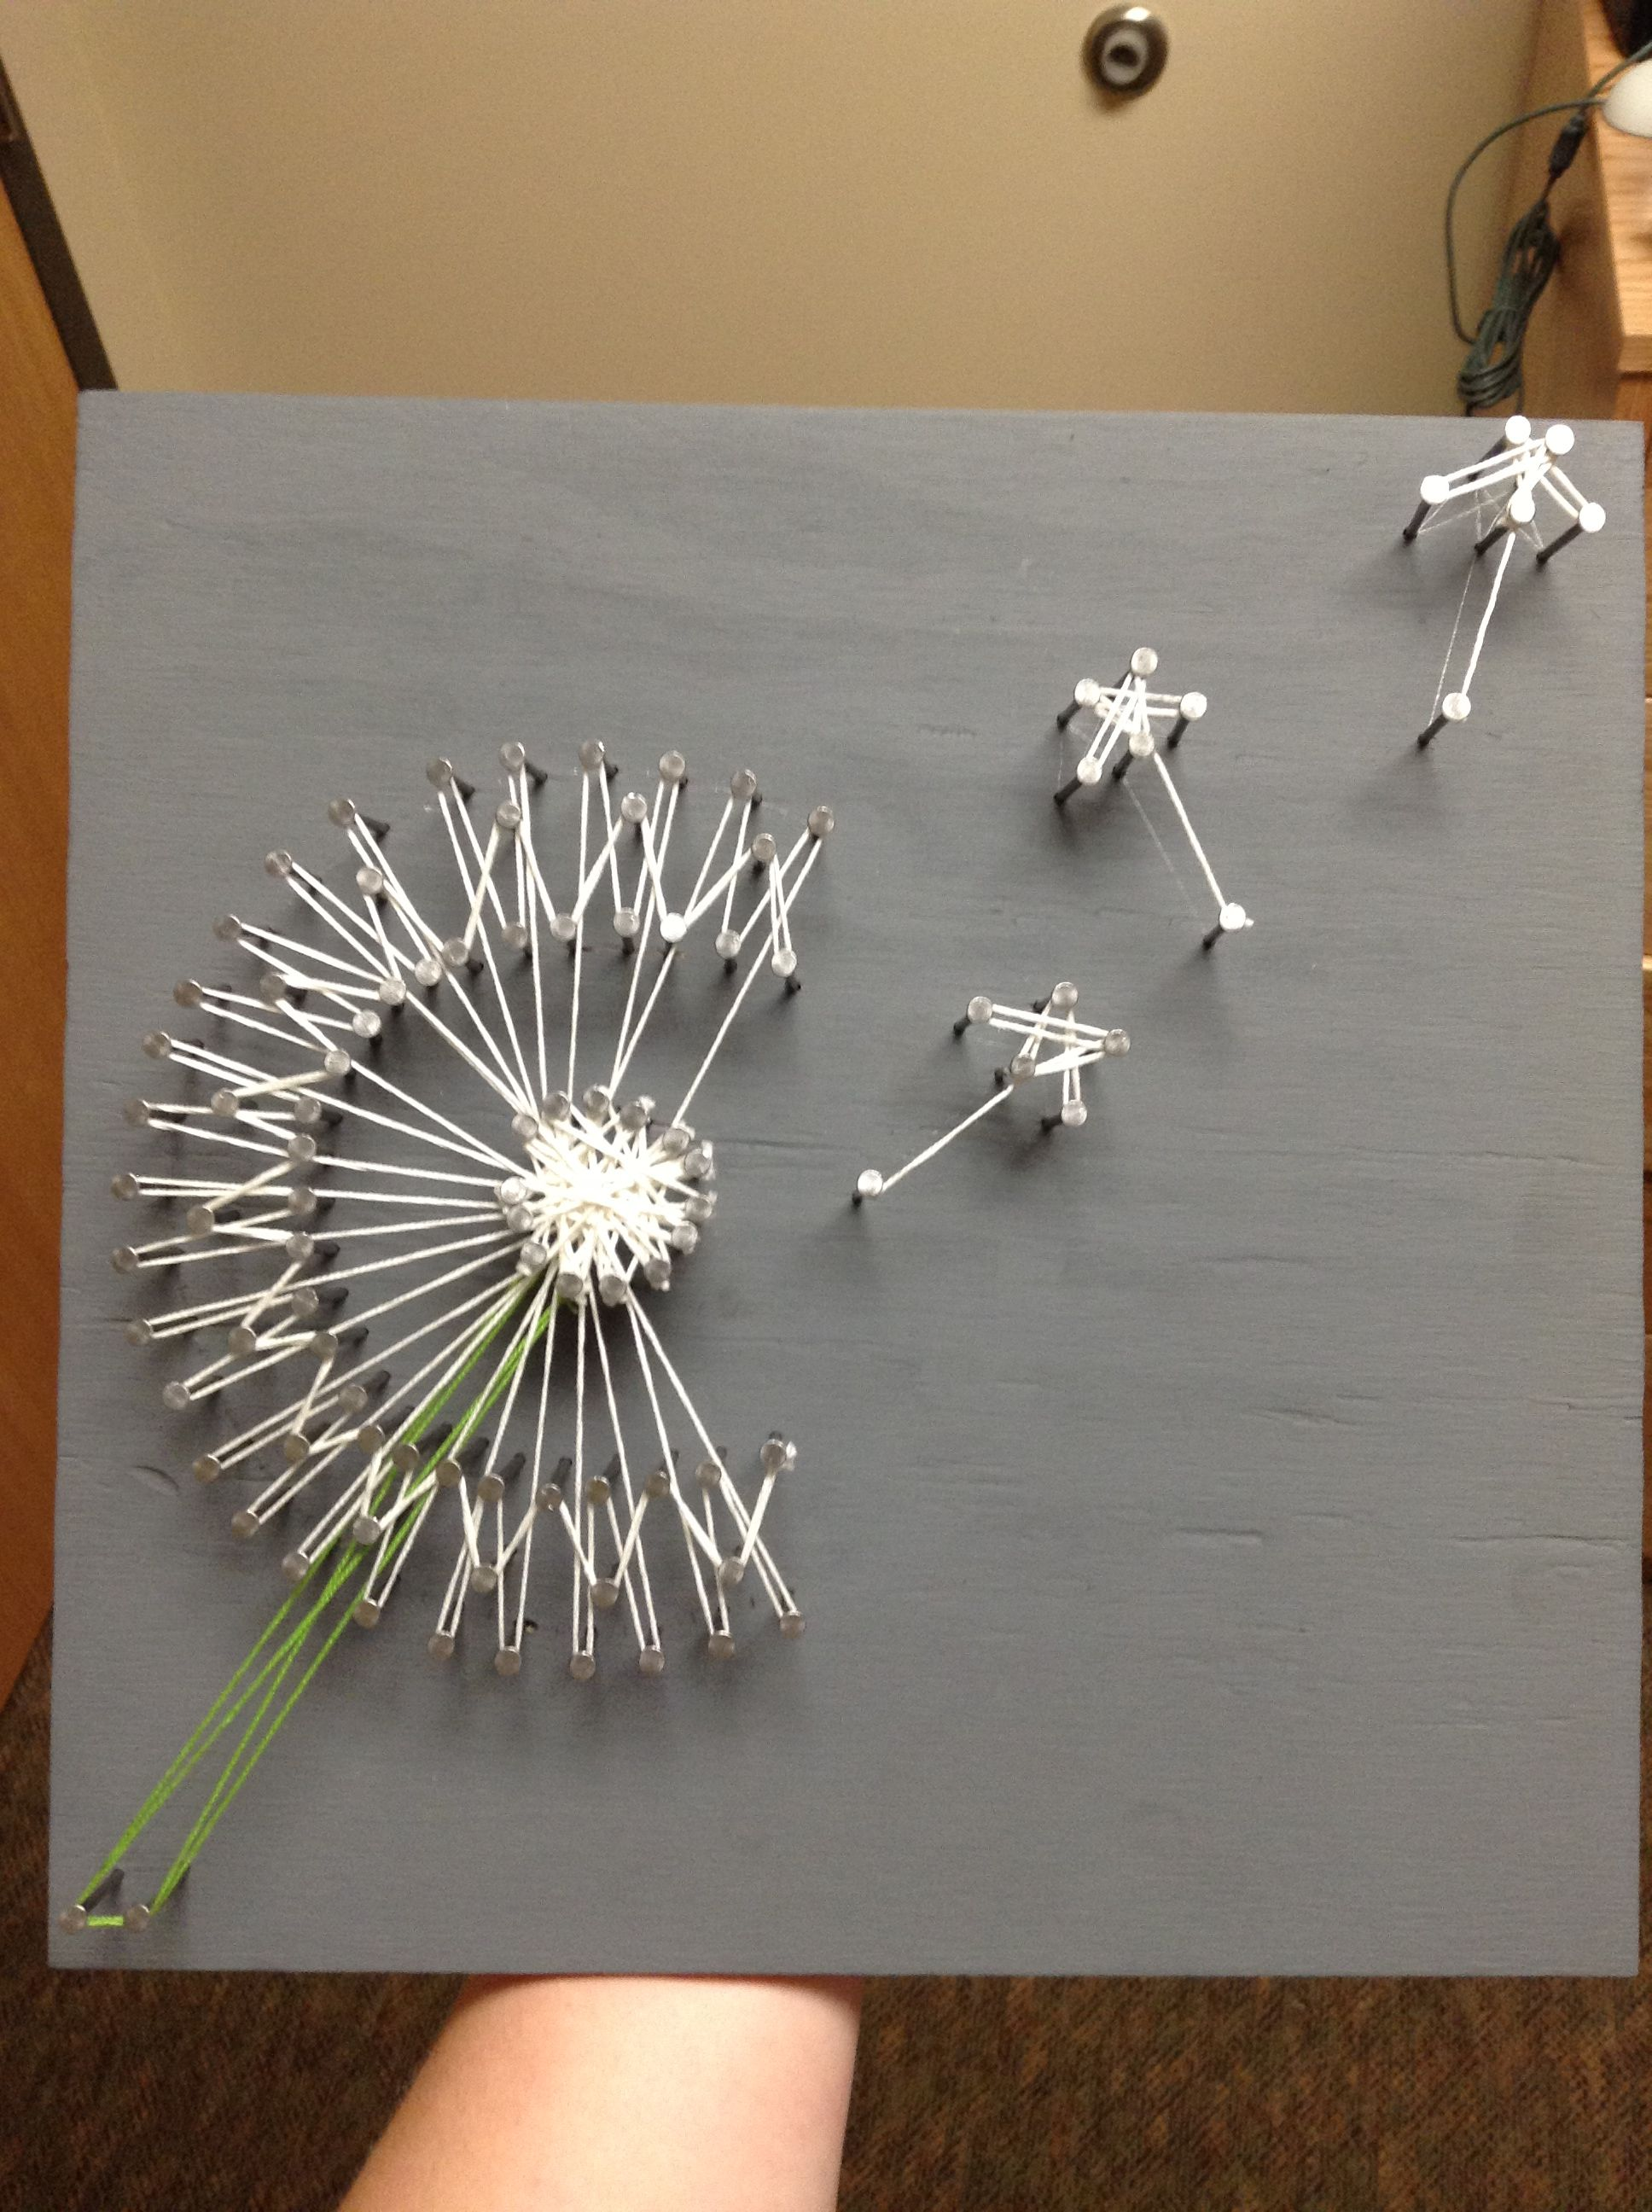 The dandelion string art i did projecten om te proberen